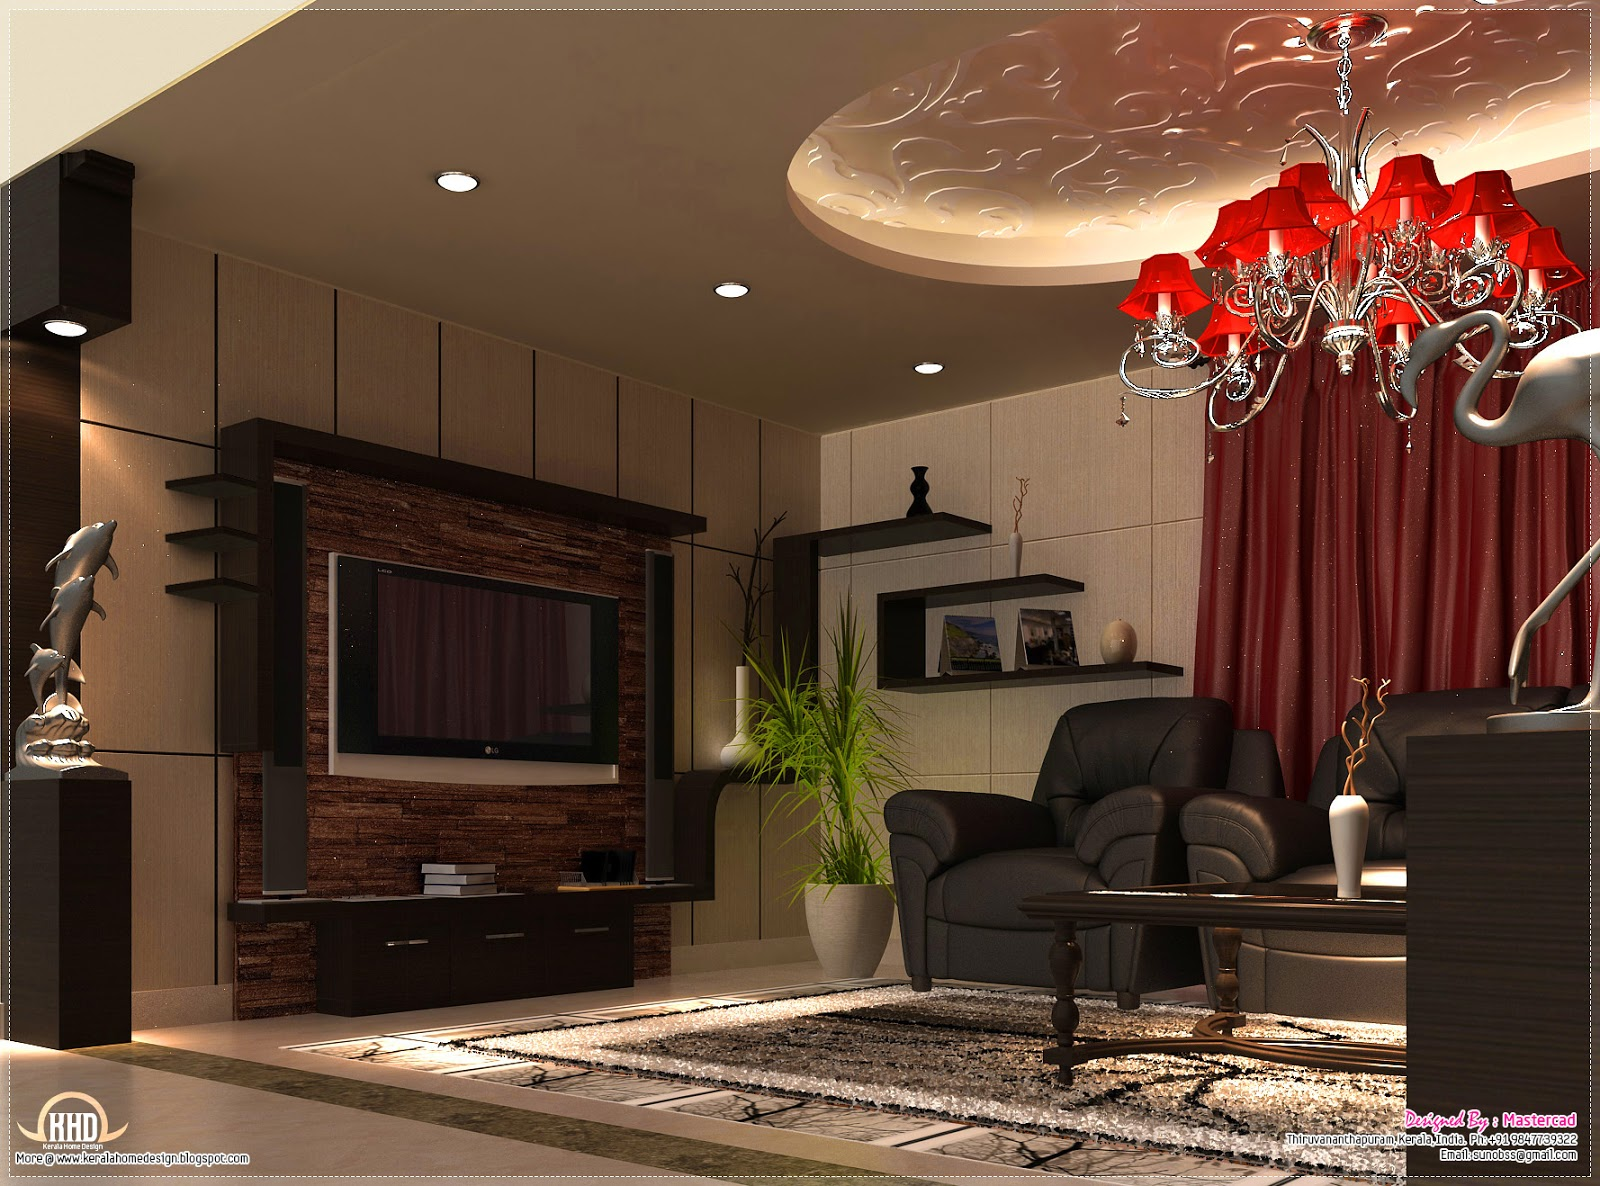 Interior design ideas home kerala plans for 1 bhk living room interior